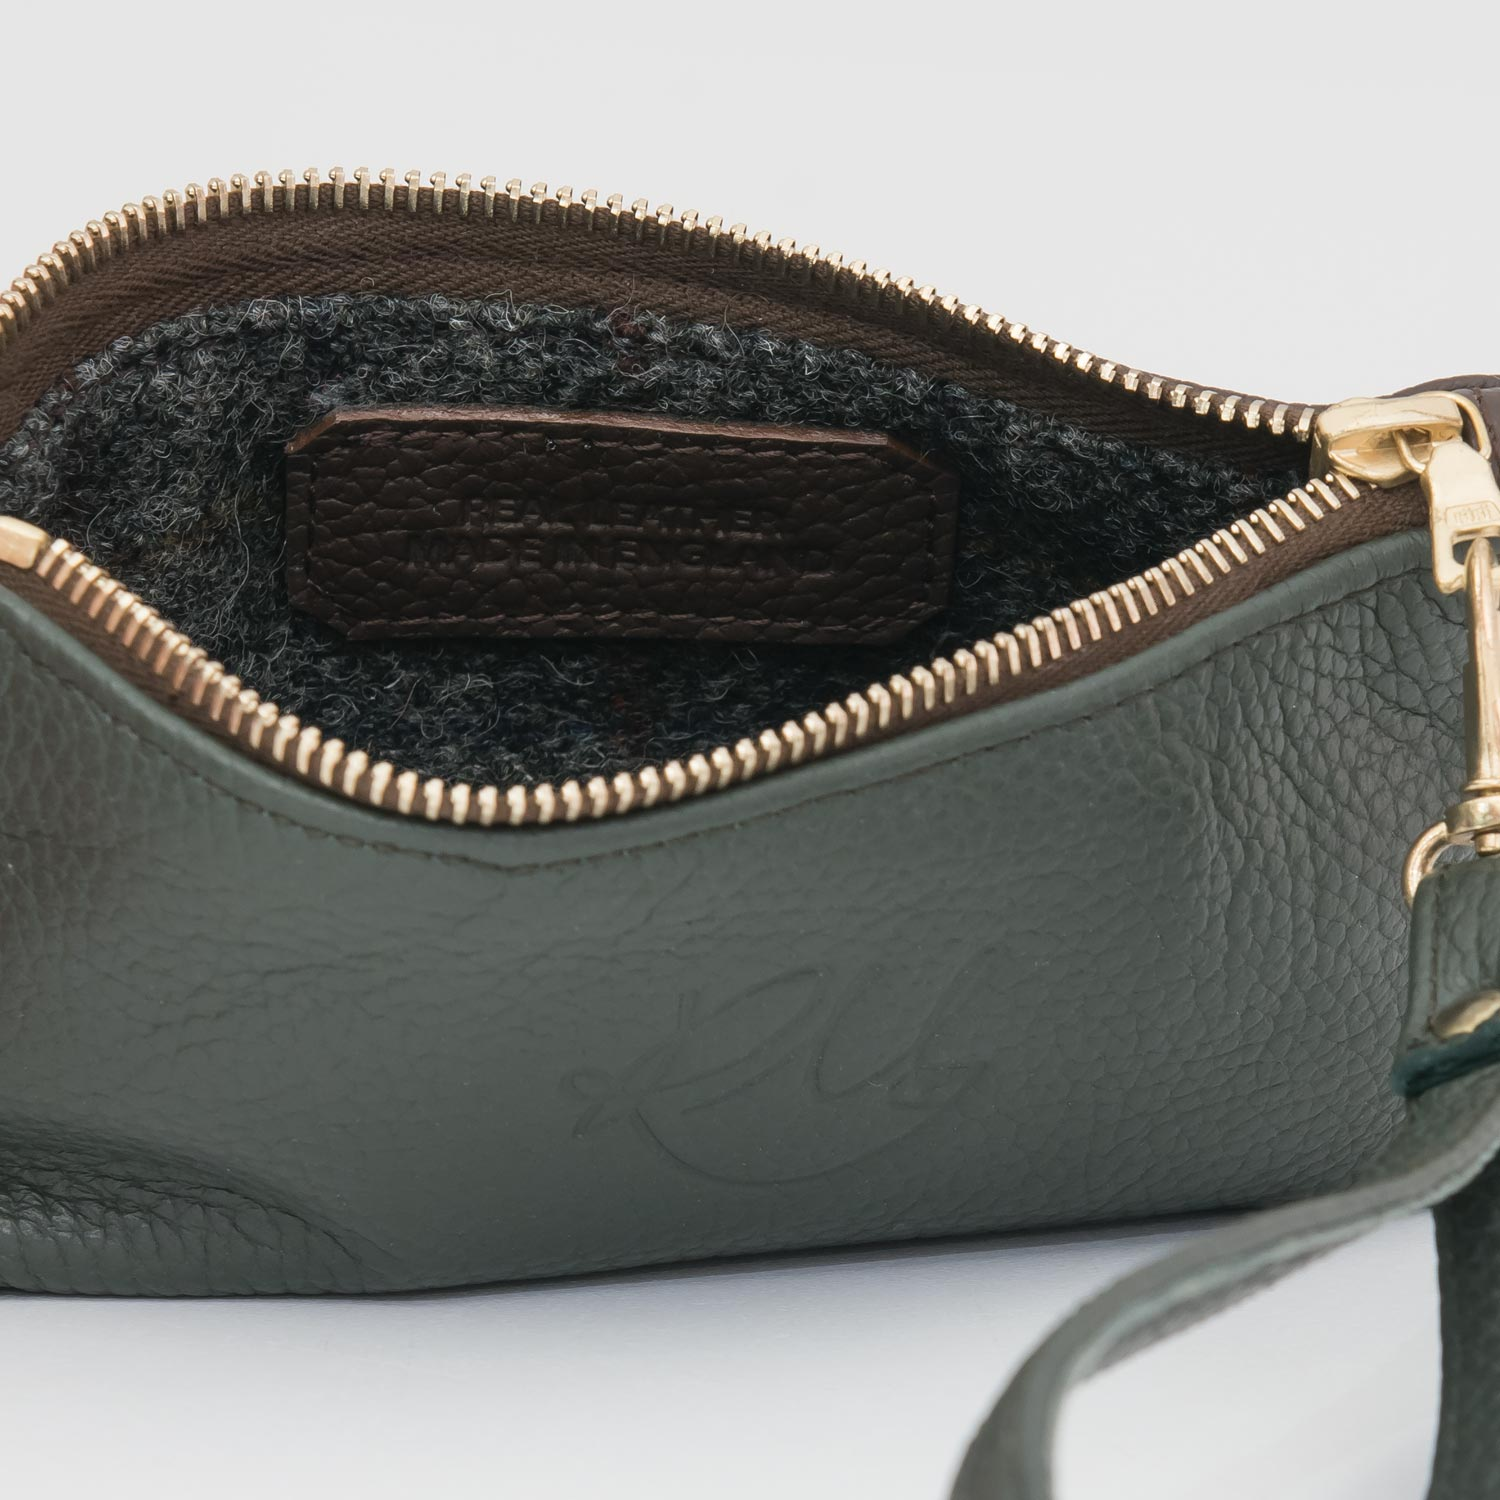 Poppy small leather clutch bag - Dark Green and brown mix